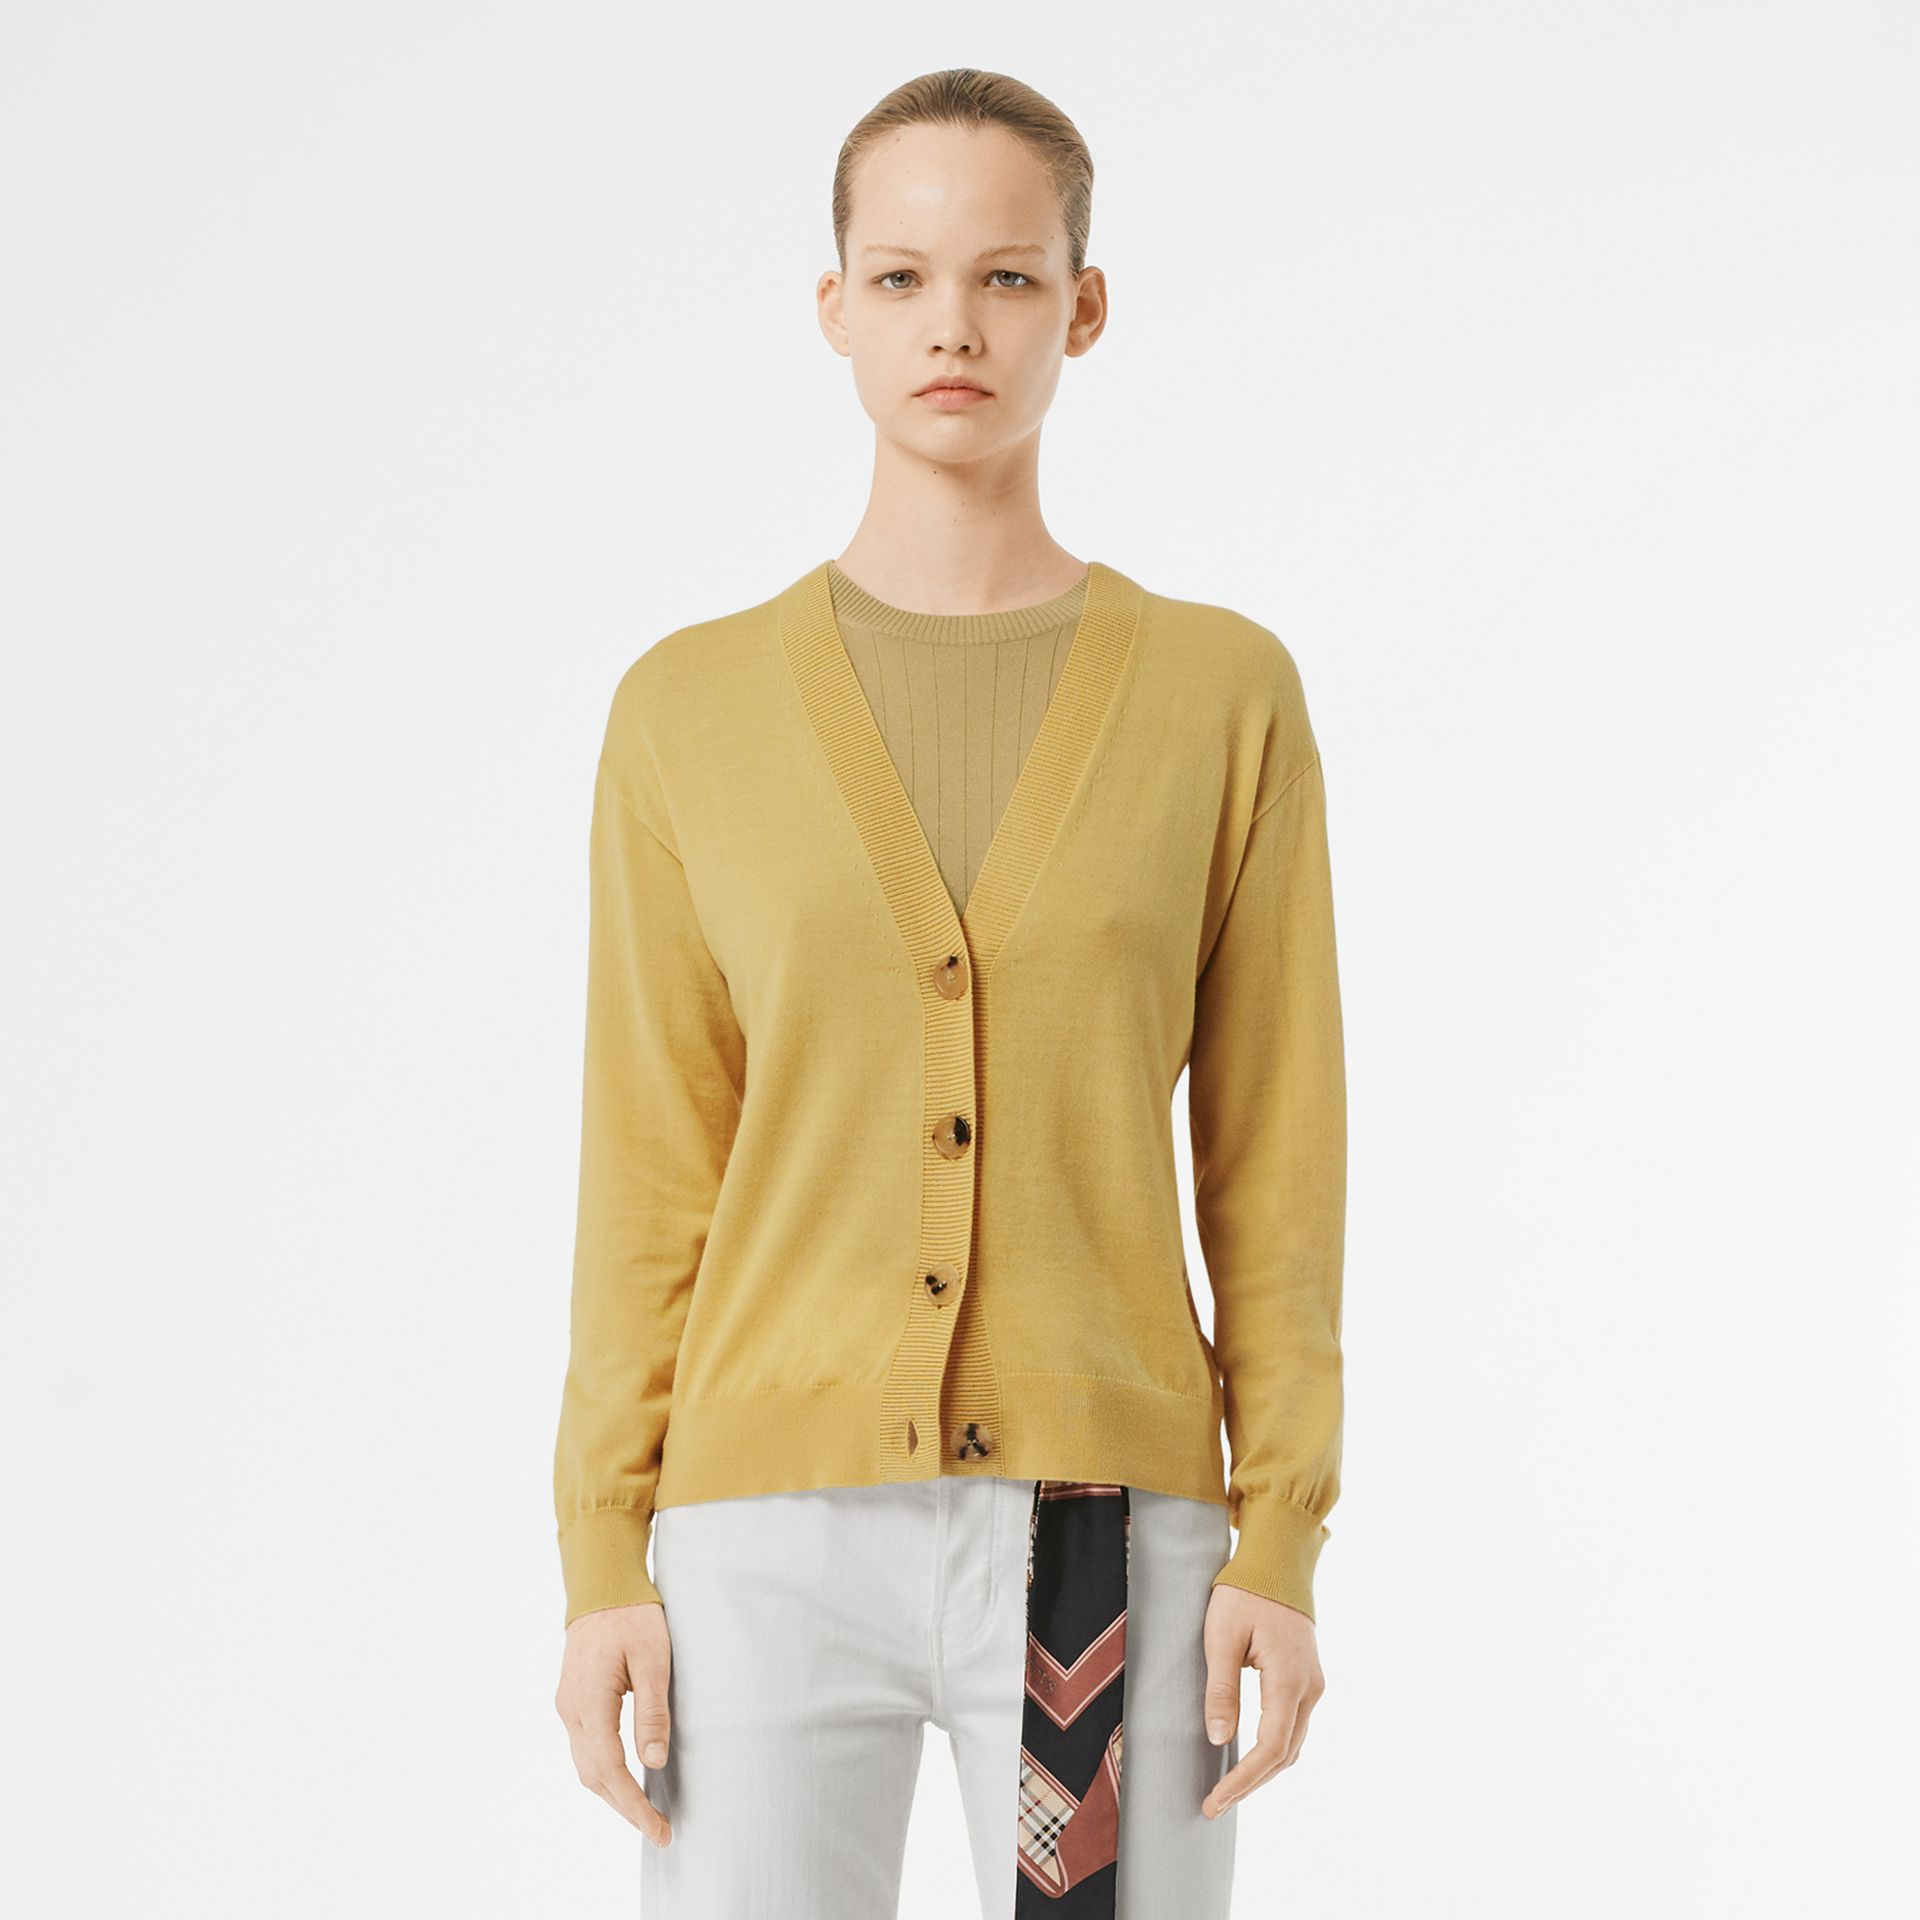 Logo Detail Merino Wool Cardigan in Primrose Yellow - Women | Burberry - gallery image 5